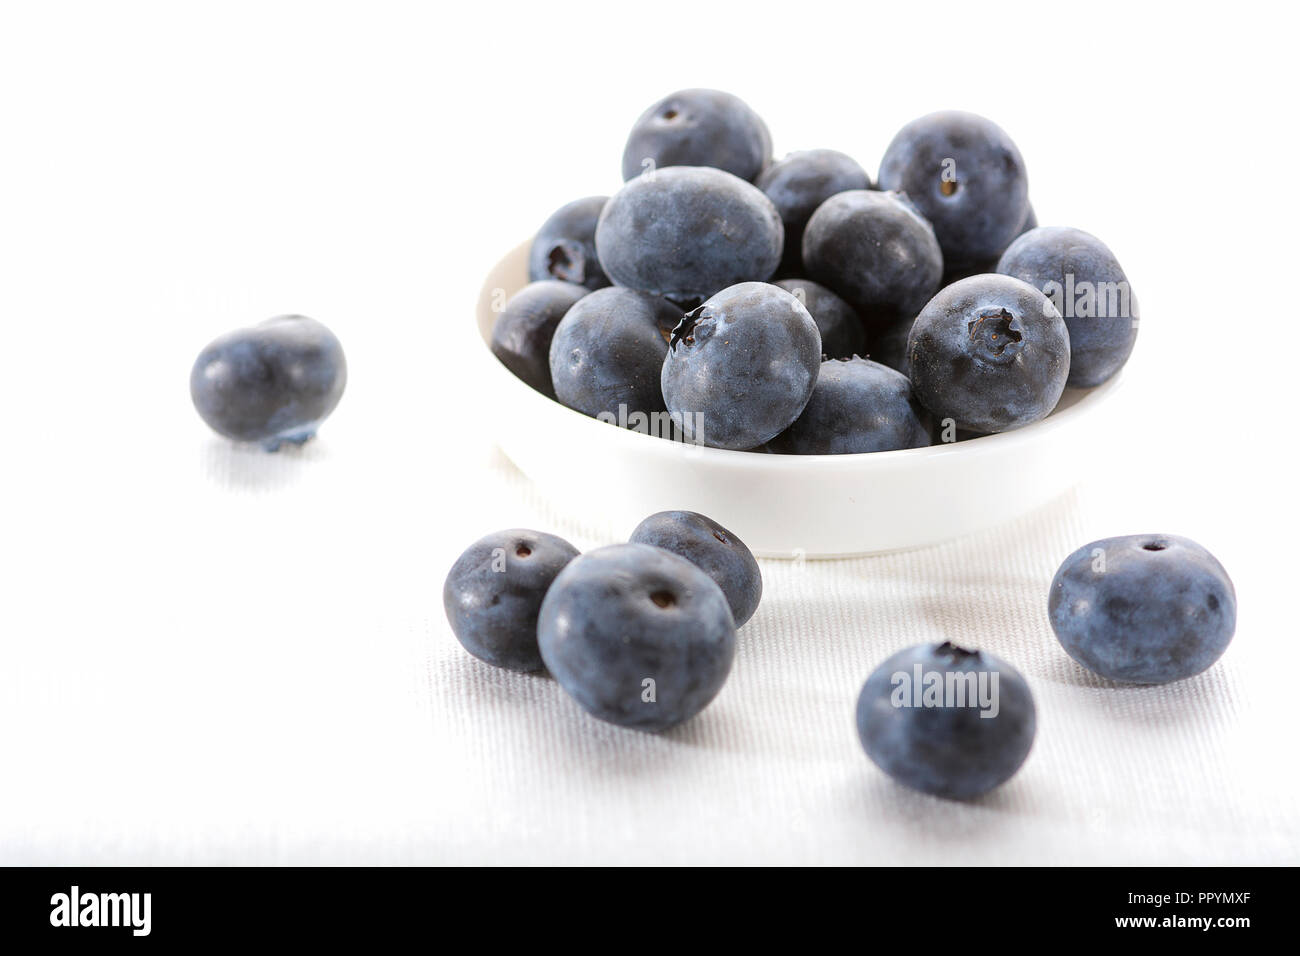 Close up of a white bowl with juicy blueberries on a white tablecloth with some blueberrie scattered on the table - Stock Image